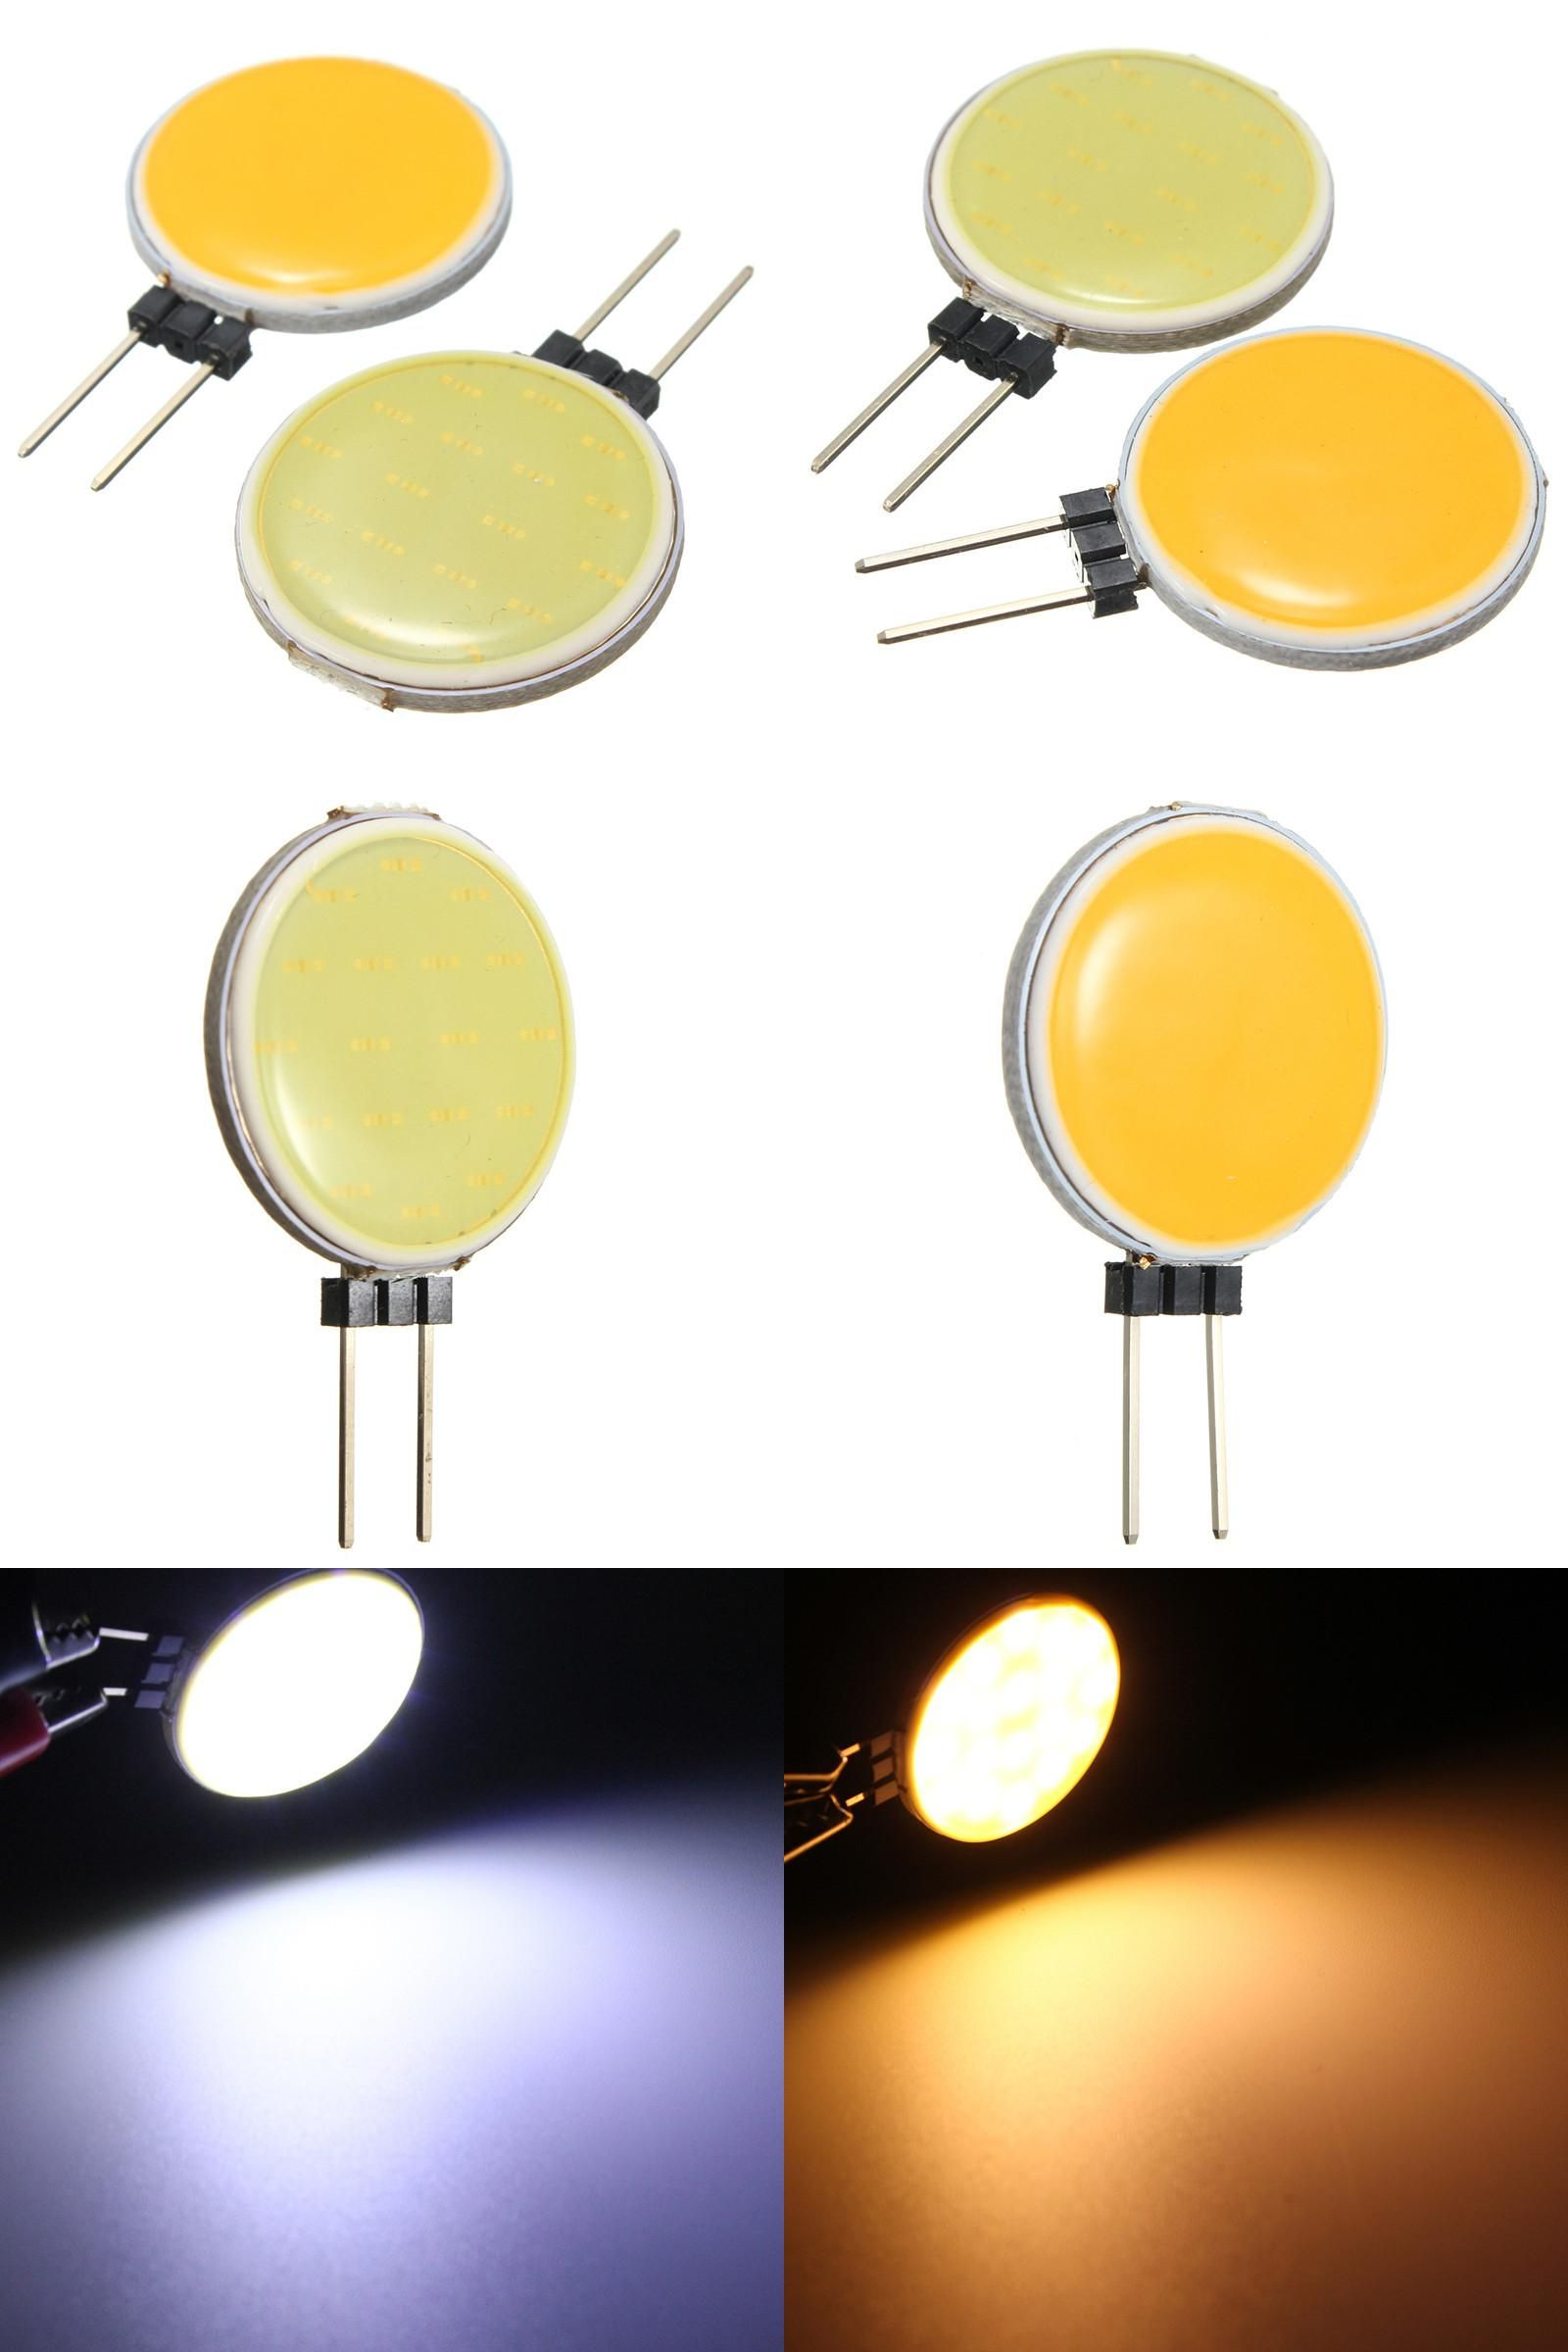 Visit To Buy Top Quality G4 Cob 4w 5w 7w 12w Pure Warm White Led 15 18 30 63 Chips Replace Halogen Lamp Spot Light Bulb Advertisement Kreatif